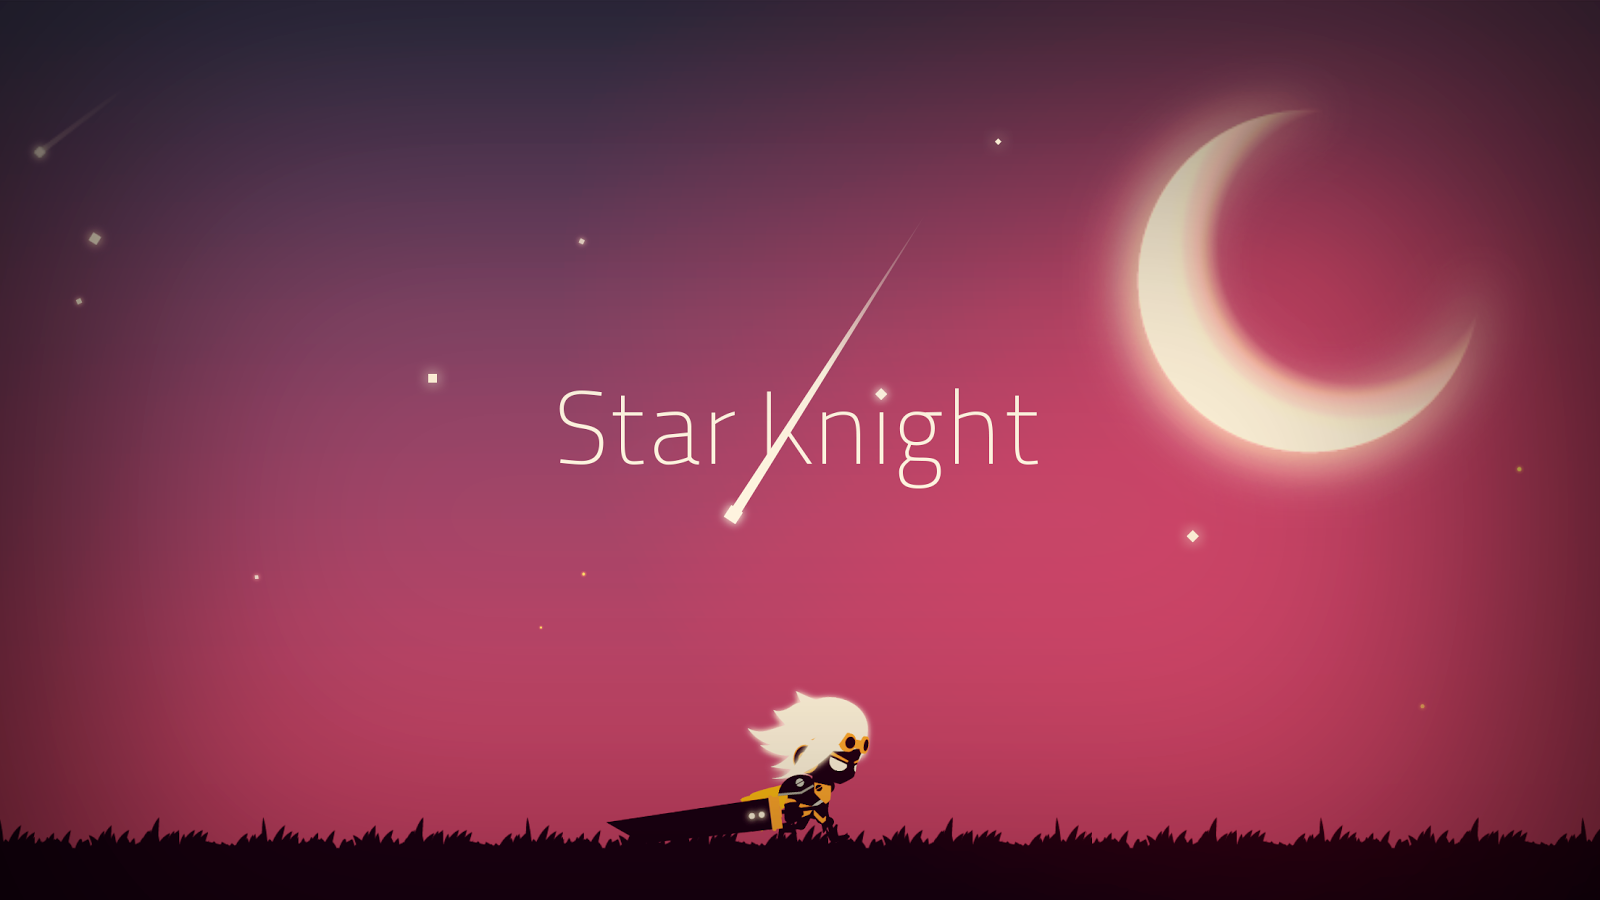 Star Knight Screenshot 12